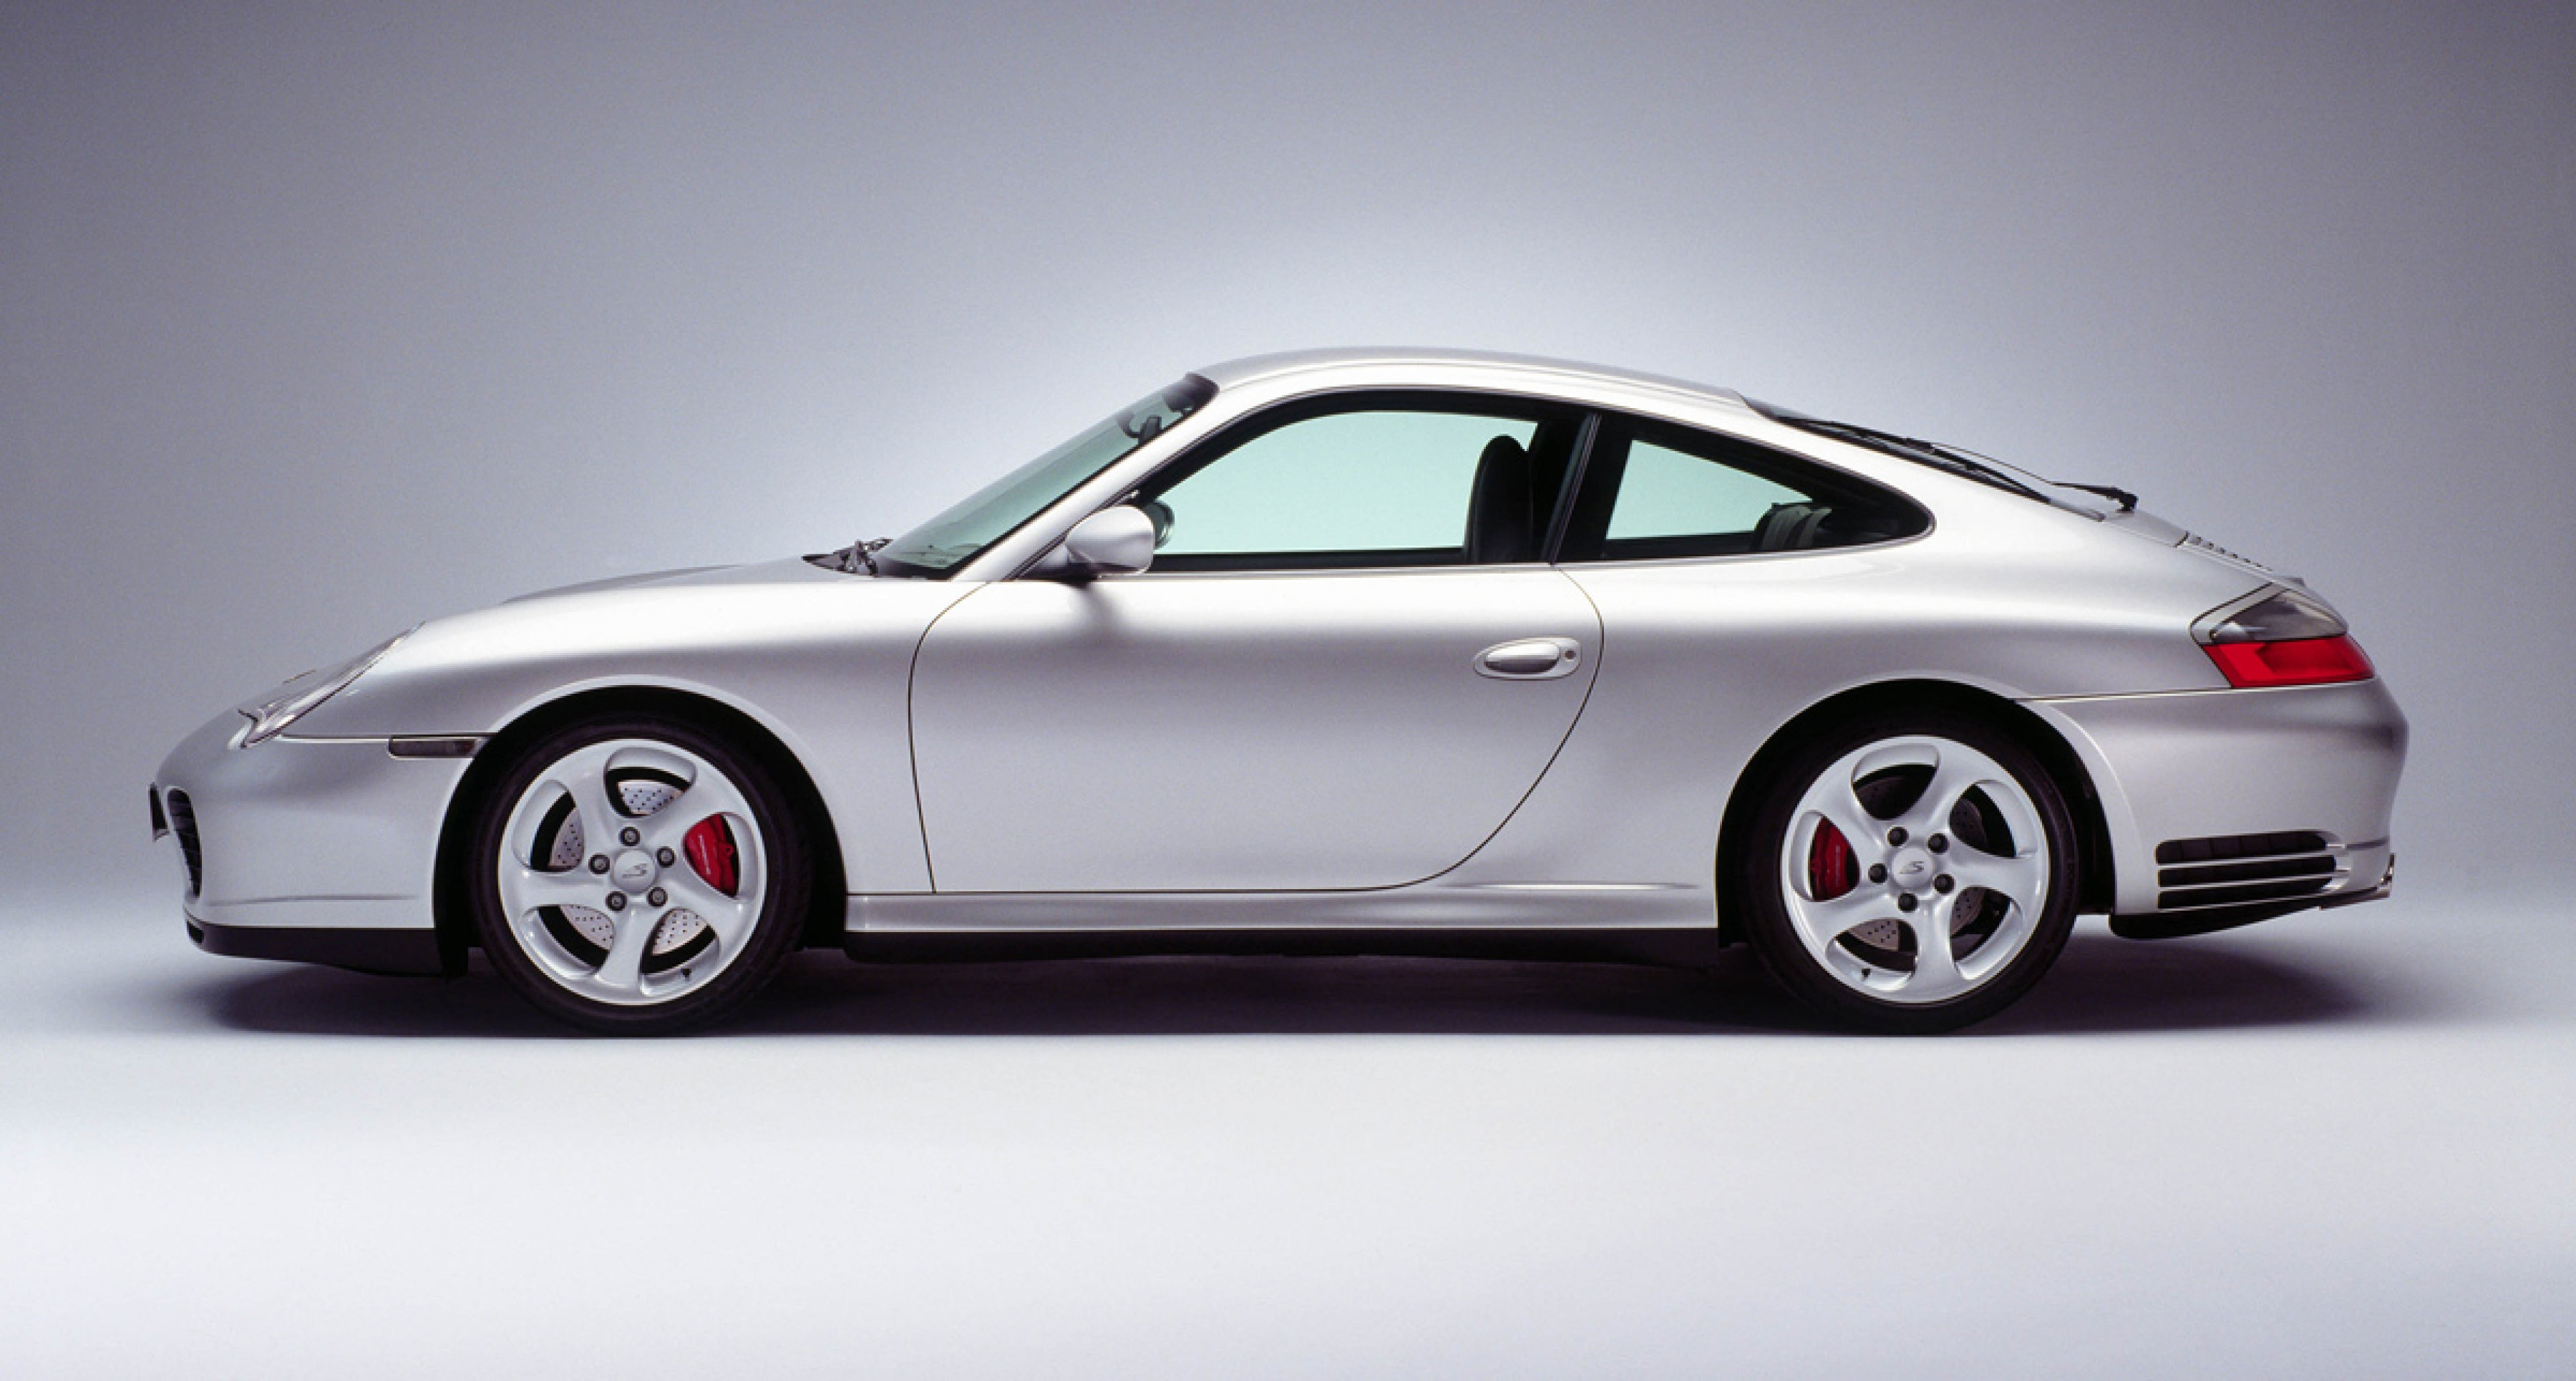 Porsche 911 996 Unloved With 175 000 Sales Classic